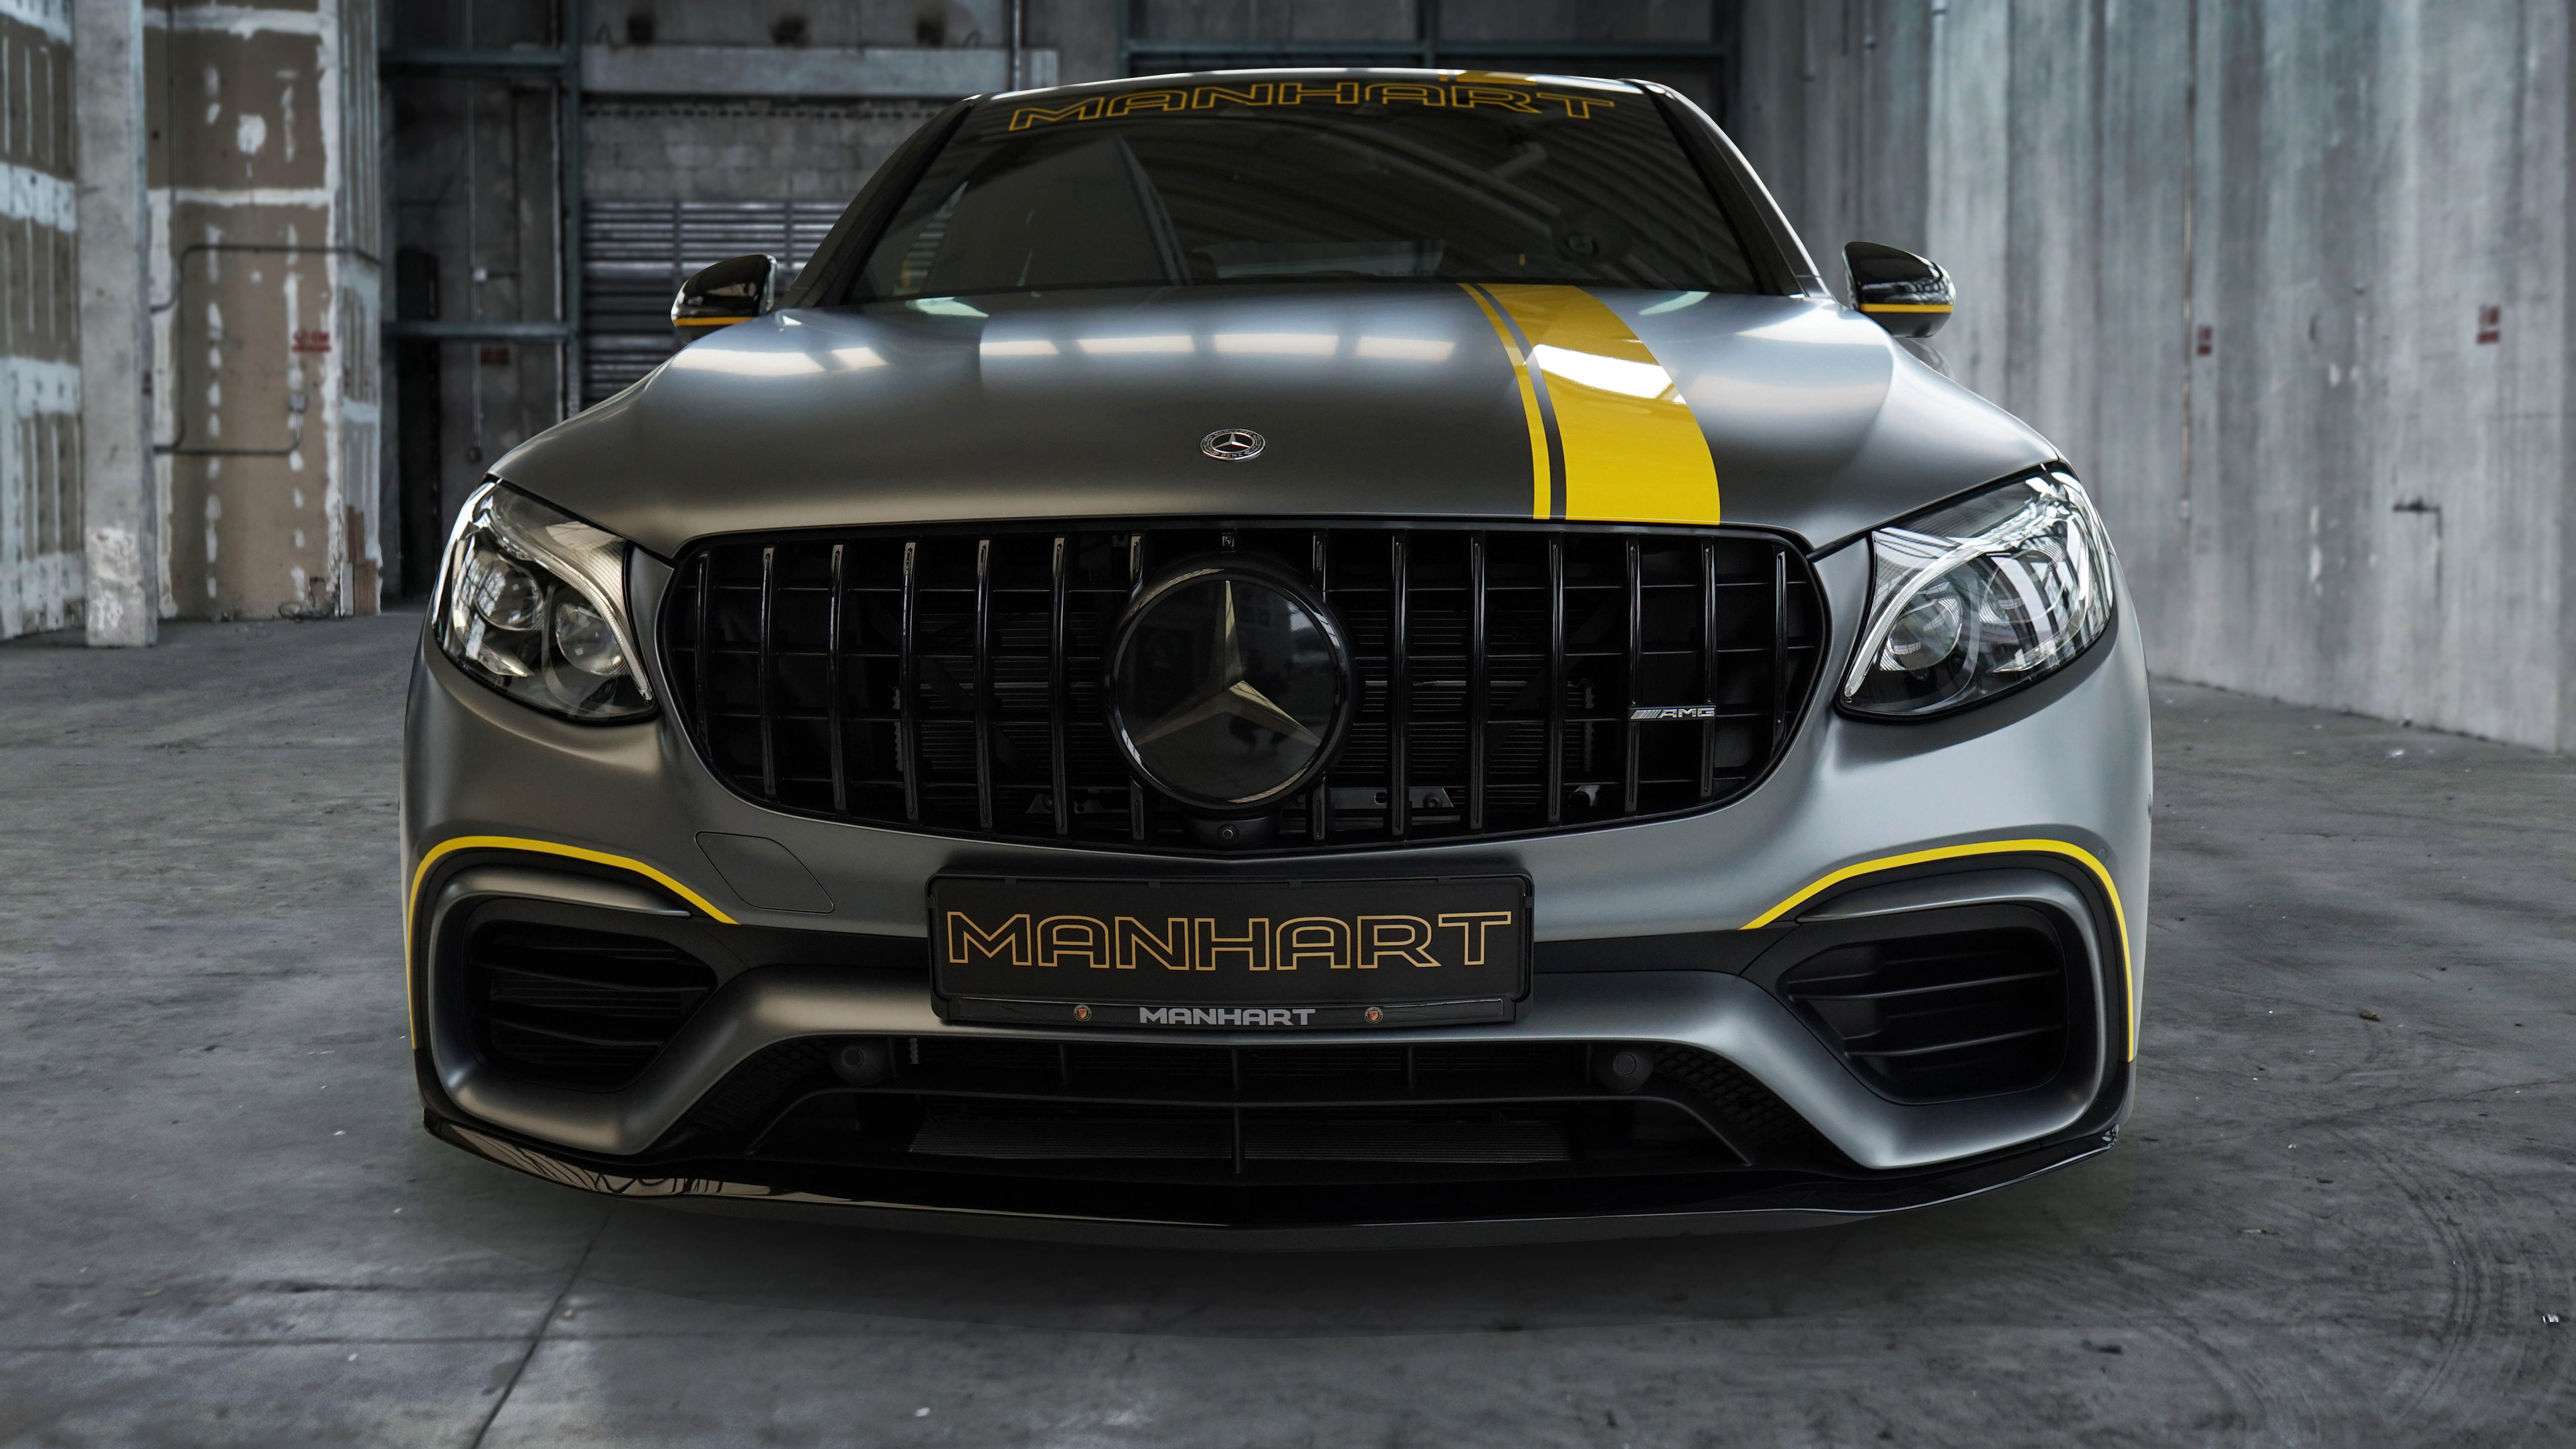 Manhart Racing Mercedes Amg Glc 63 S Coupe 2019 5k Wallpaper Hd Car Wallpapers Id 13108